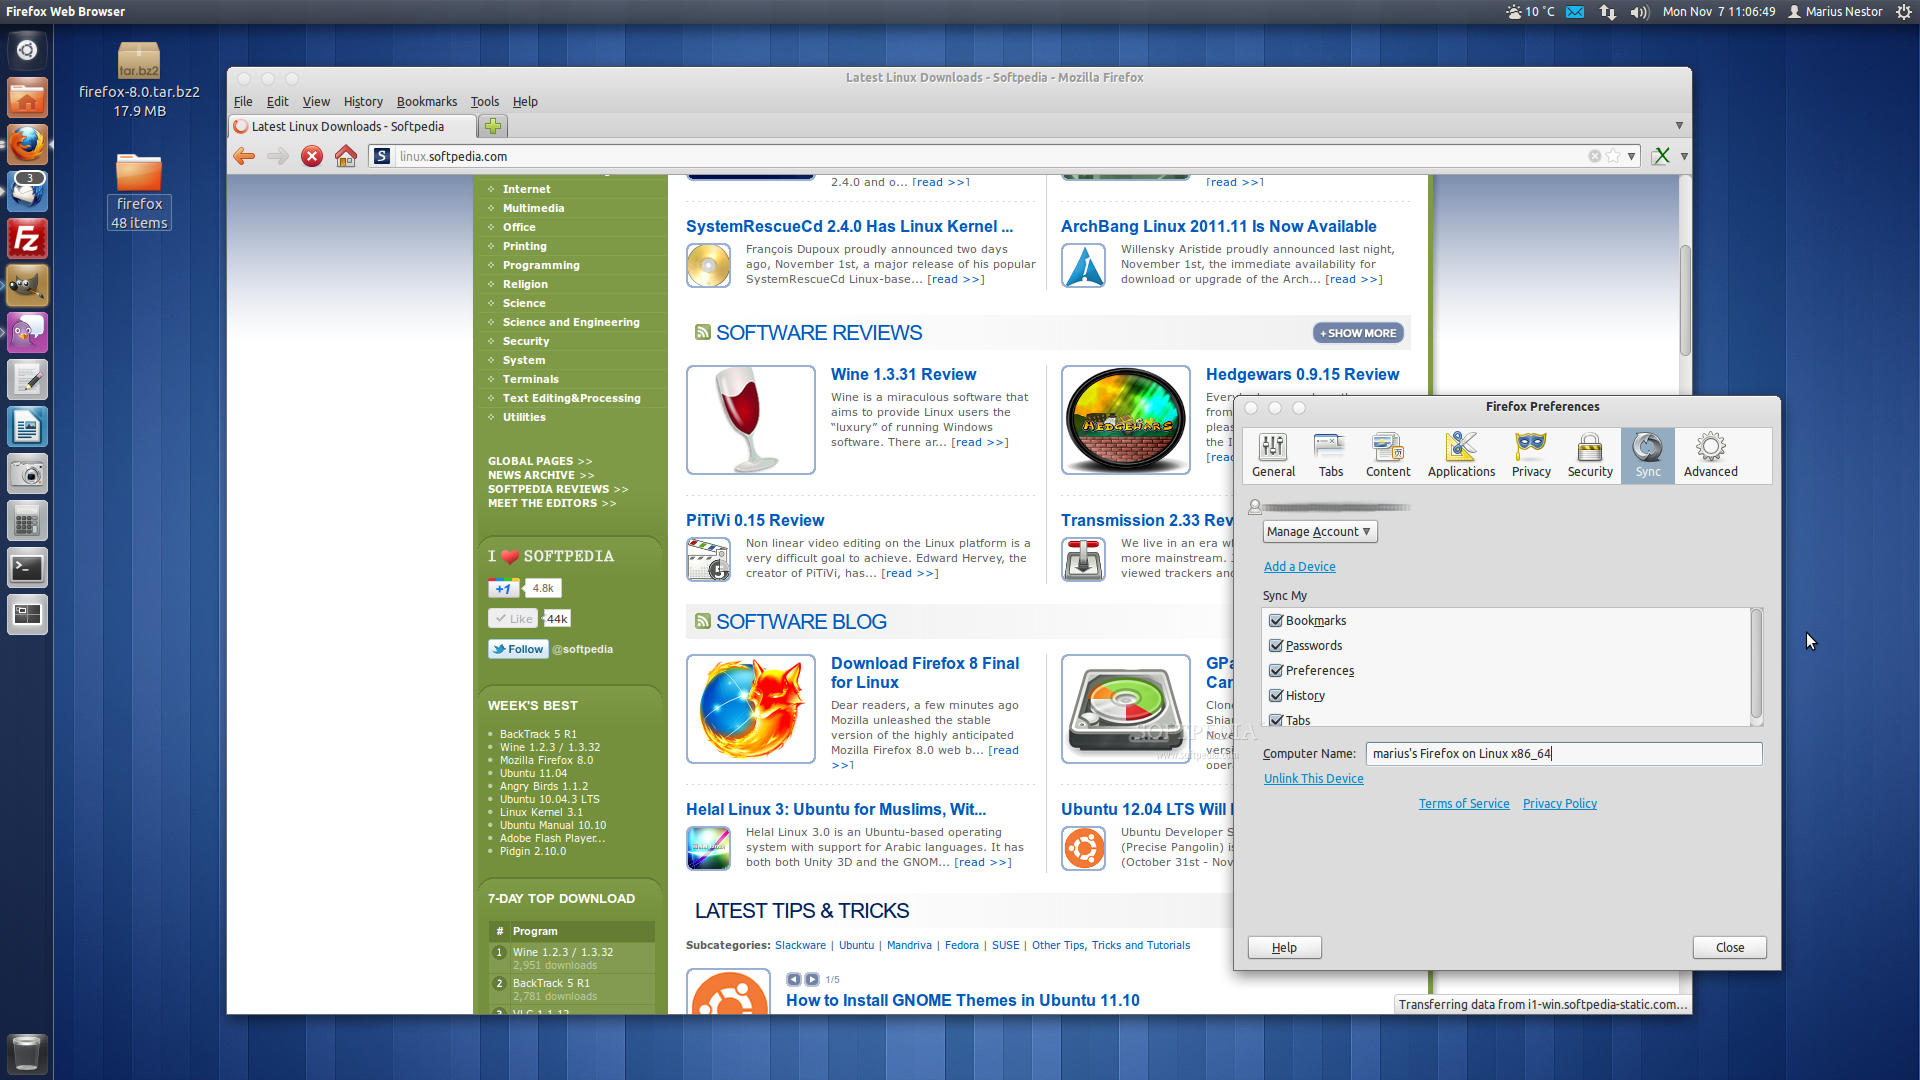 Download Firefox 8 Final for Linux